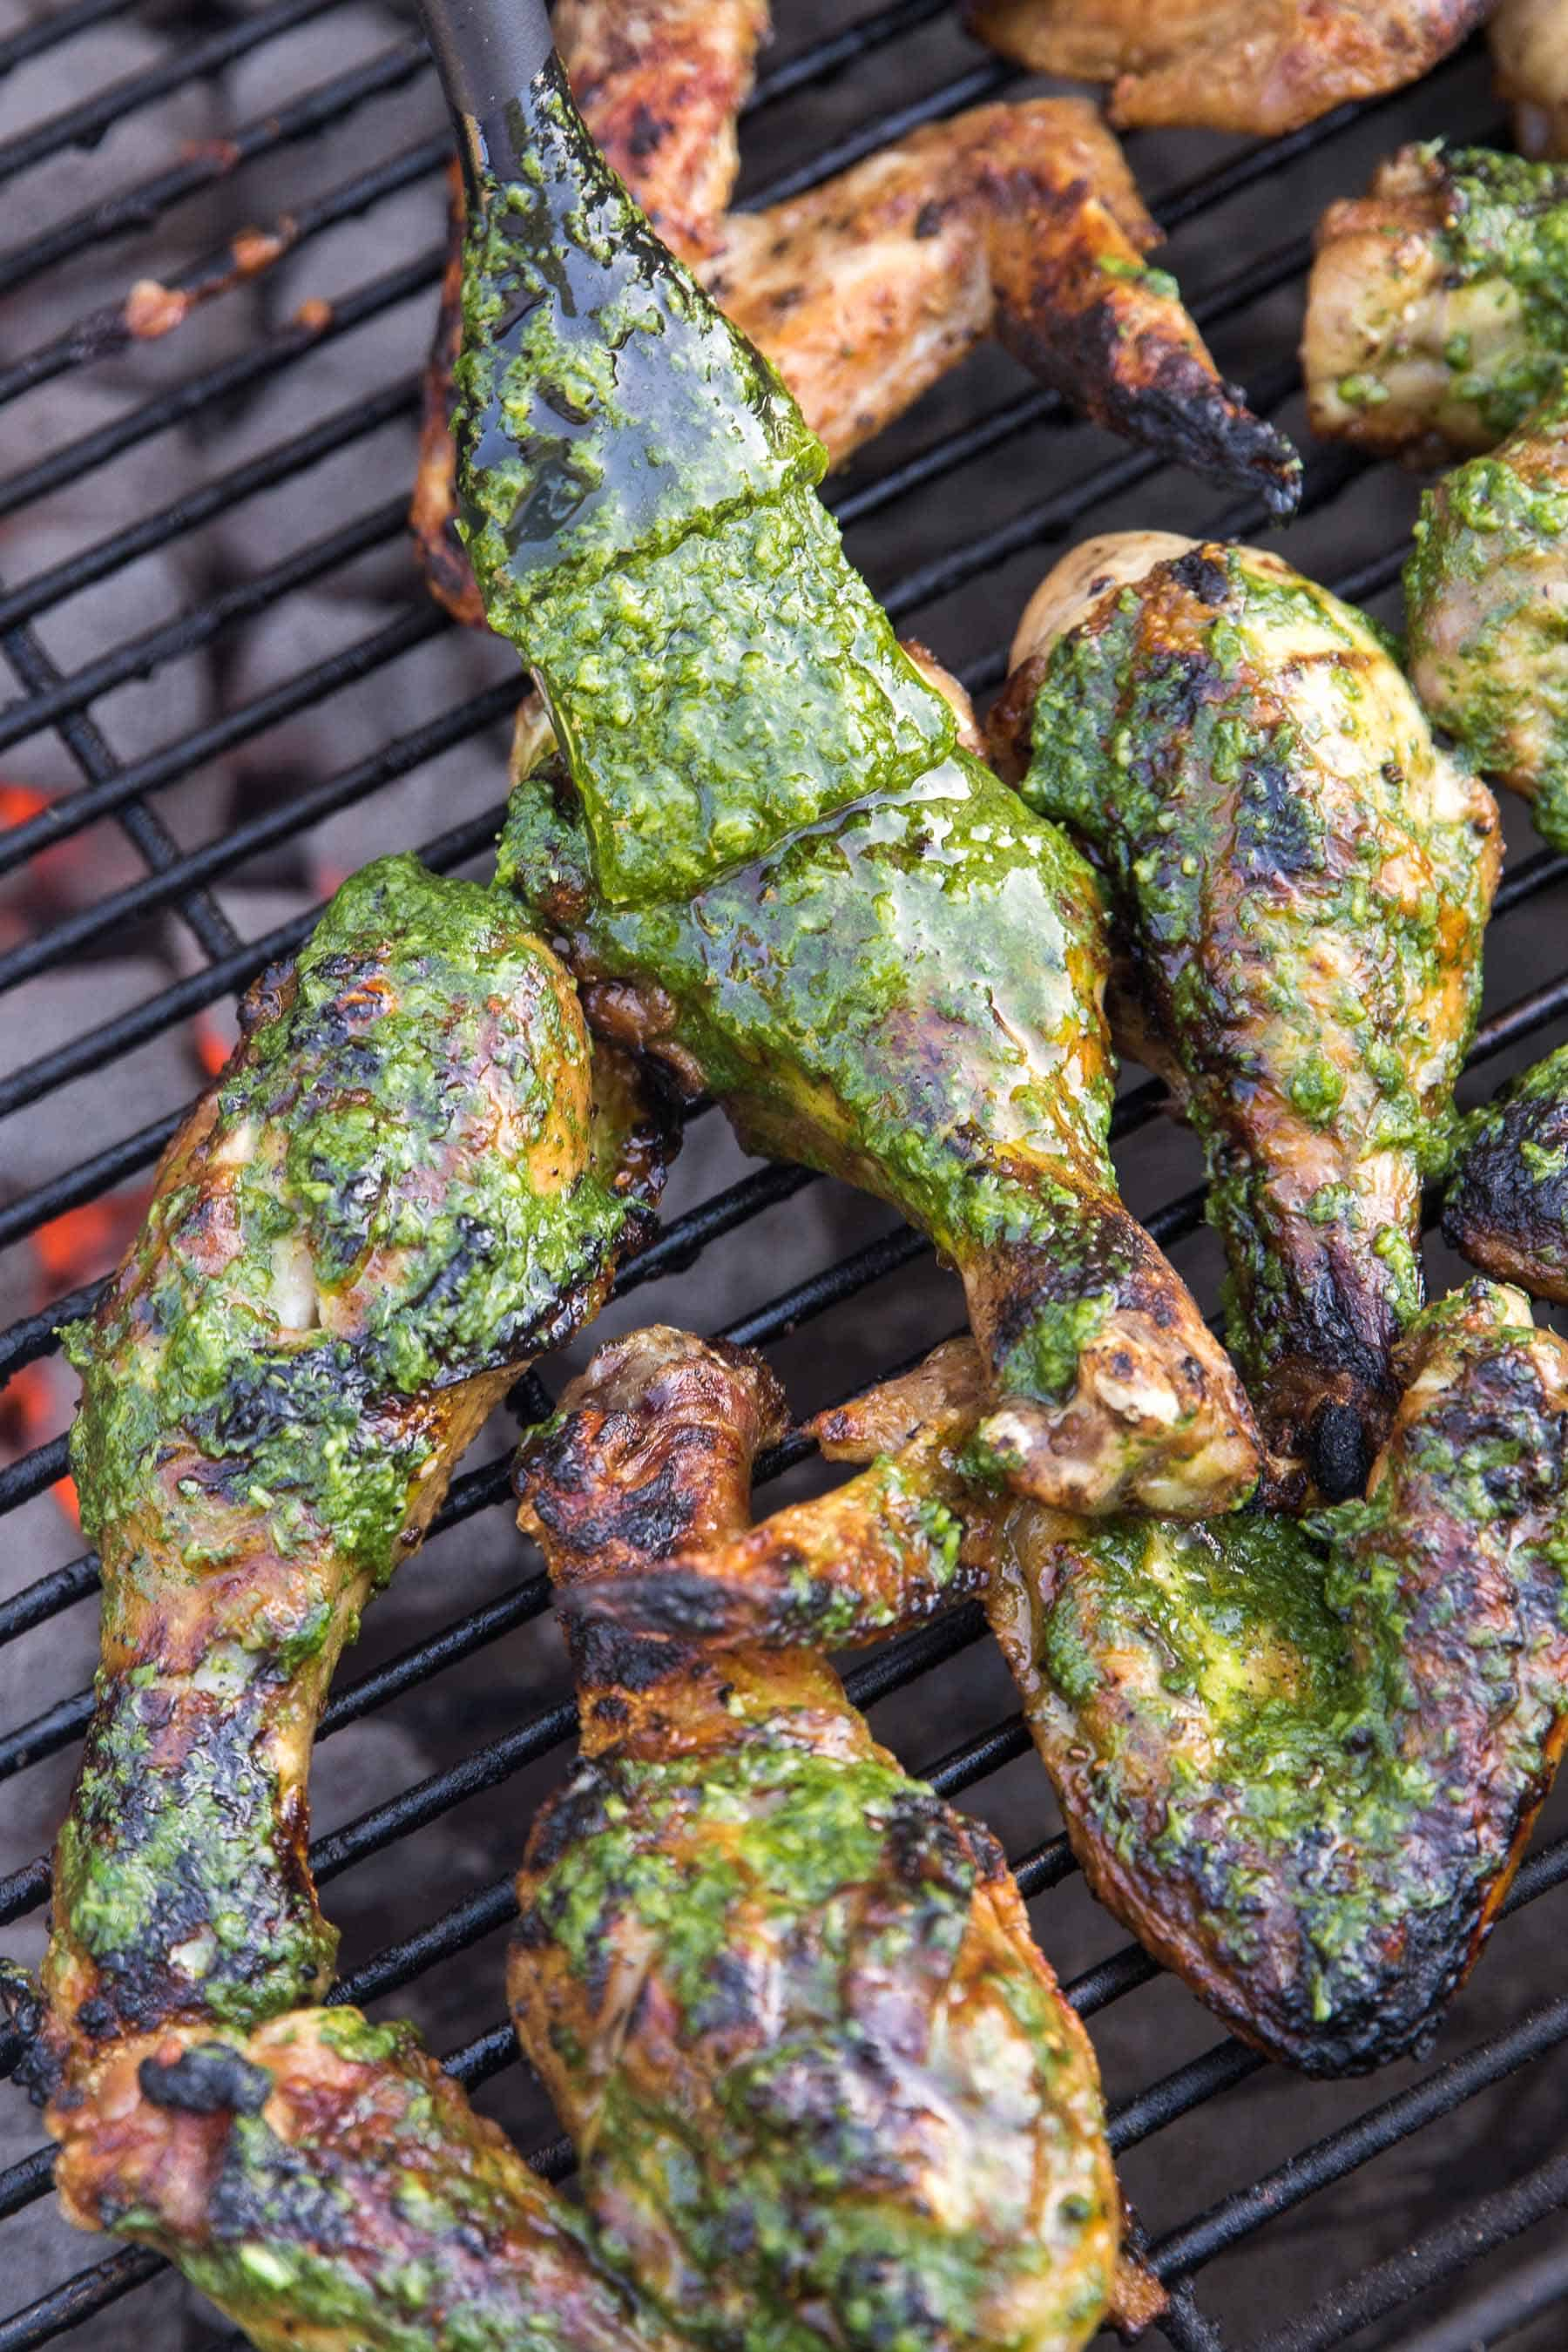 grilled chicken being brushed with green chimichurri sauce on a bbq